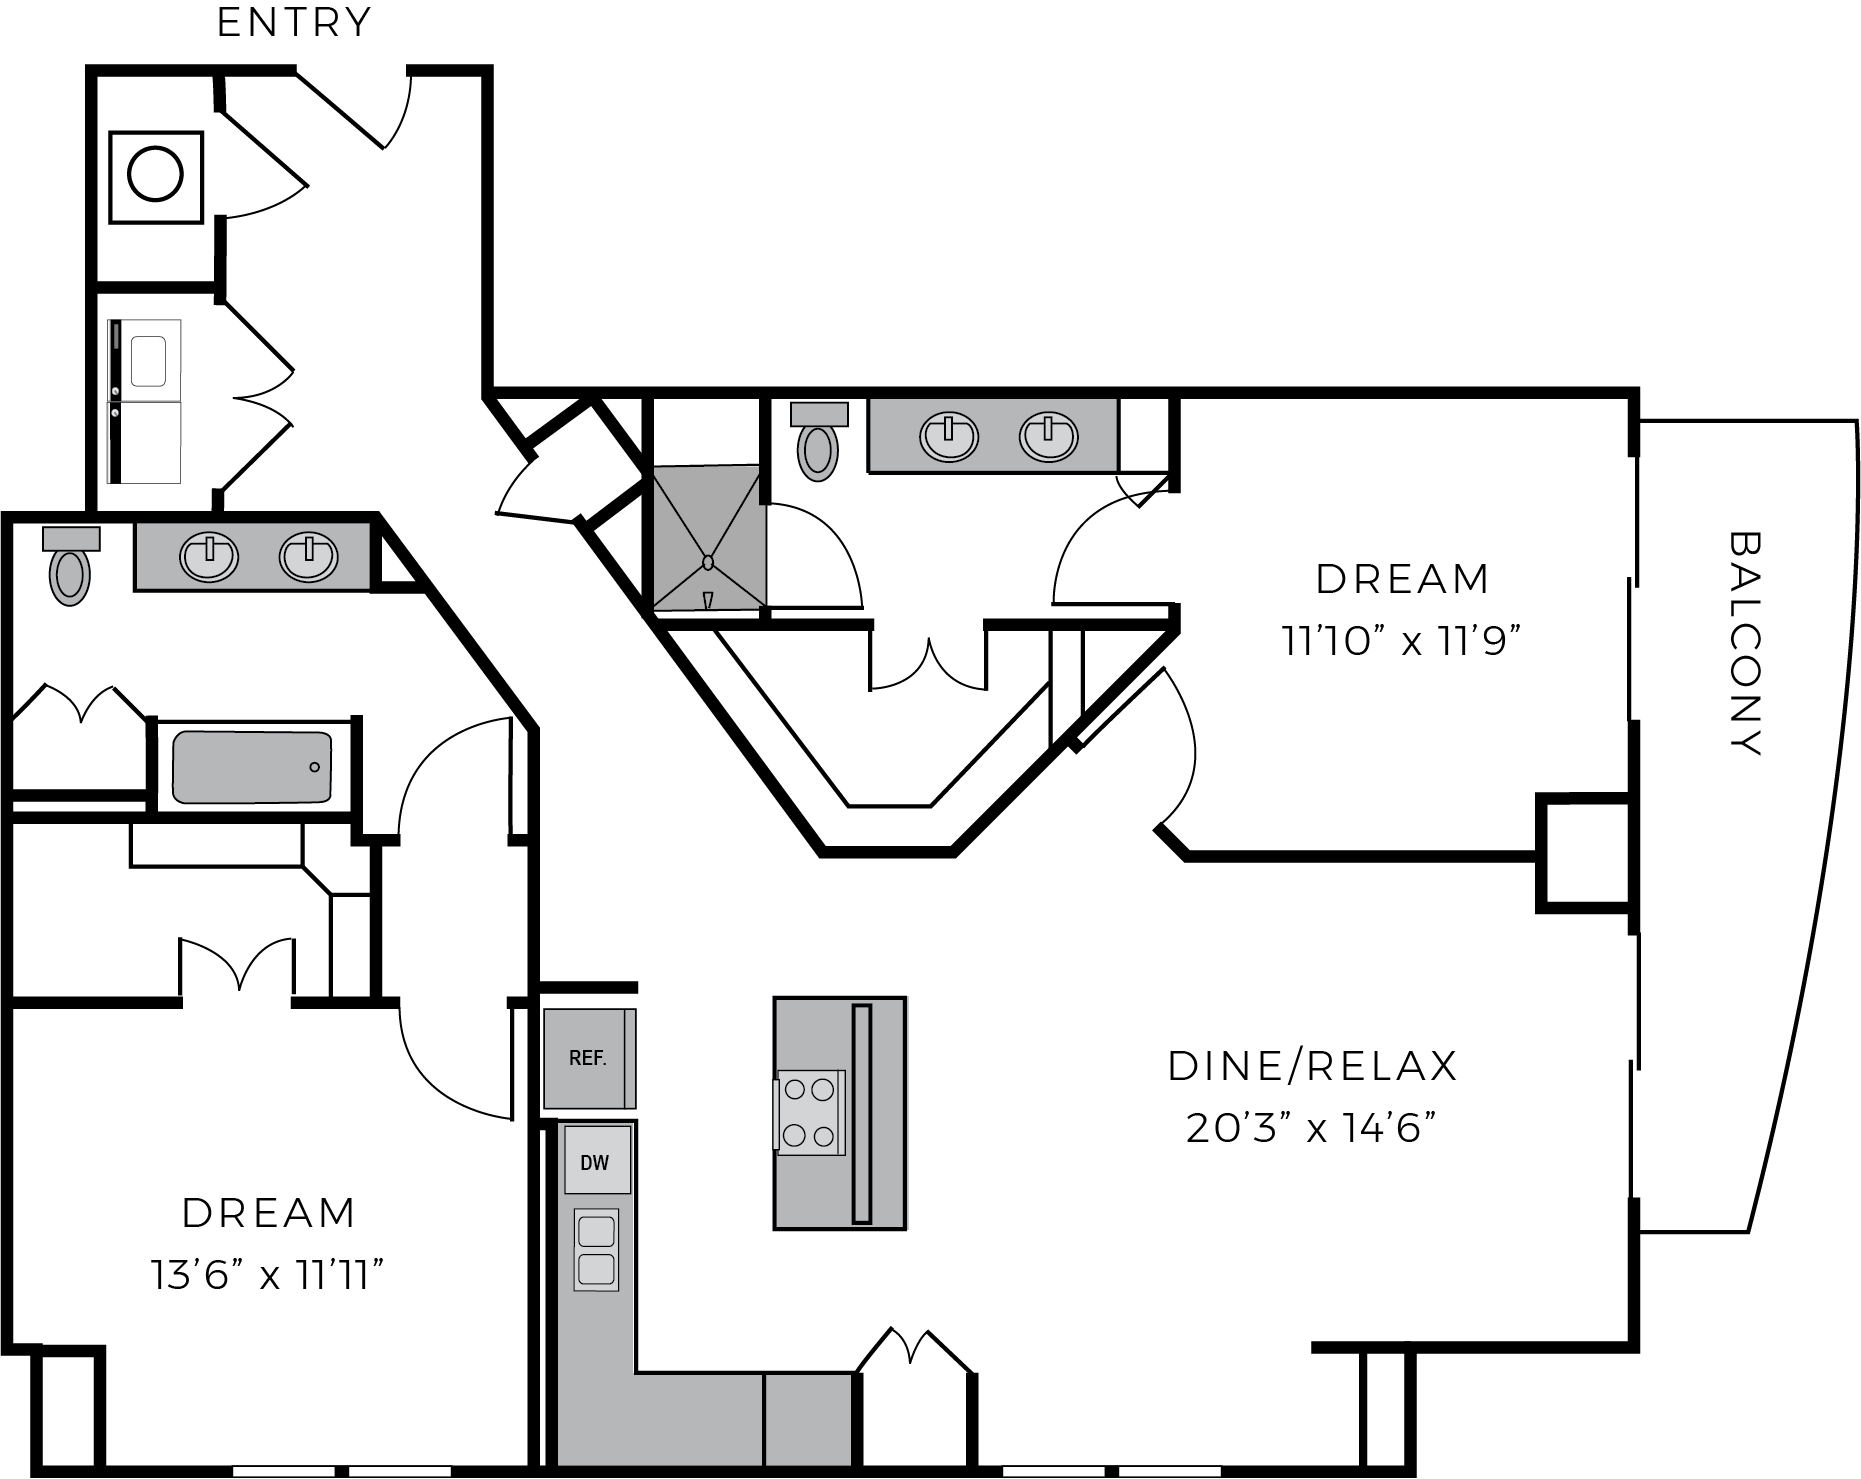 Two bedroom luxury apartment The McCarthy Houston